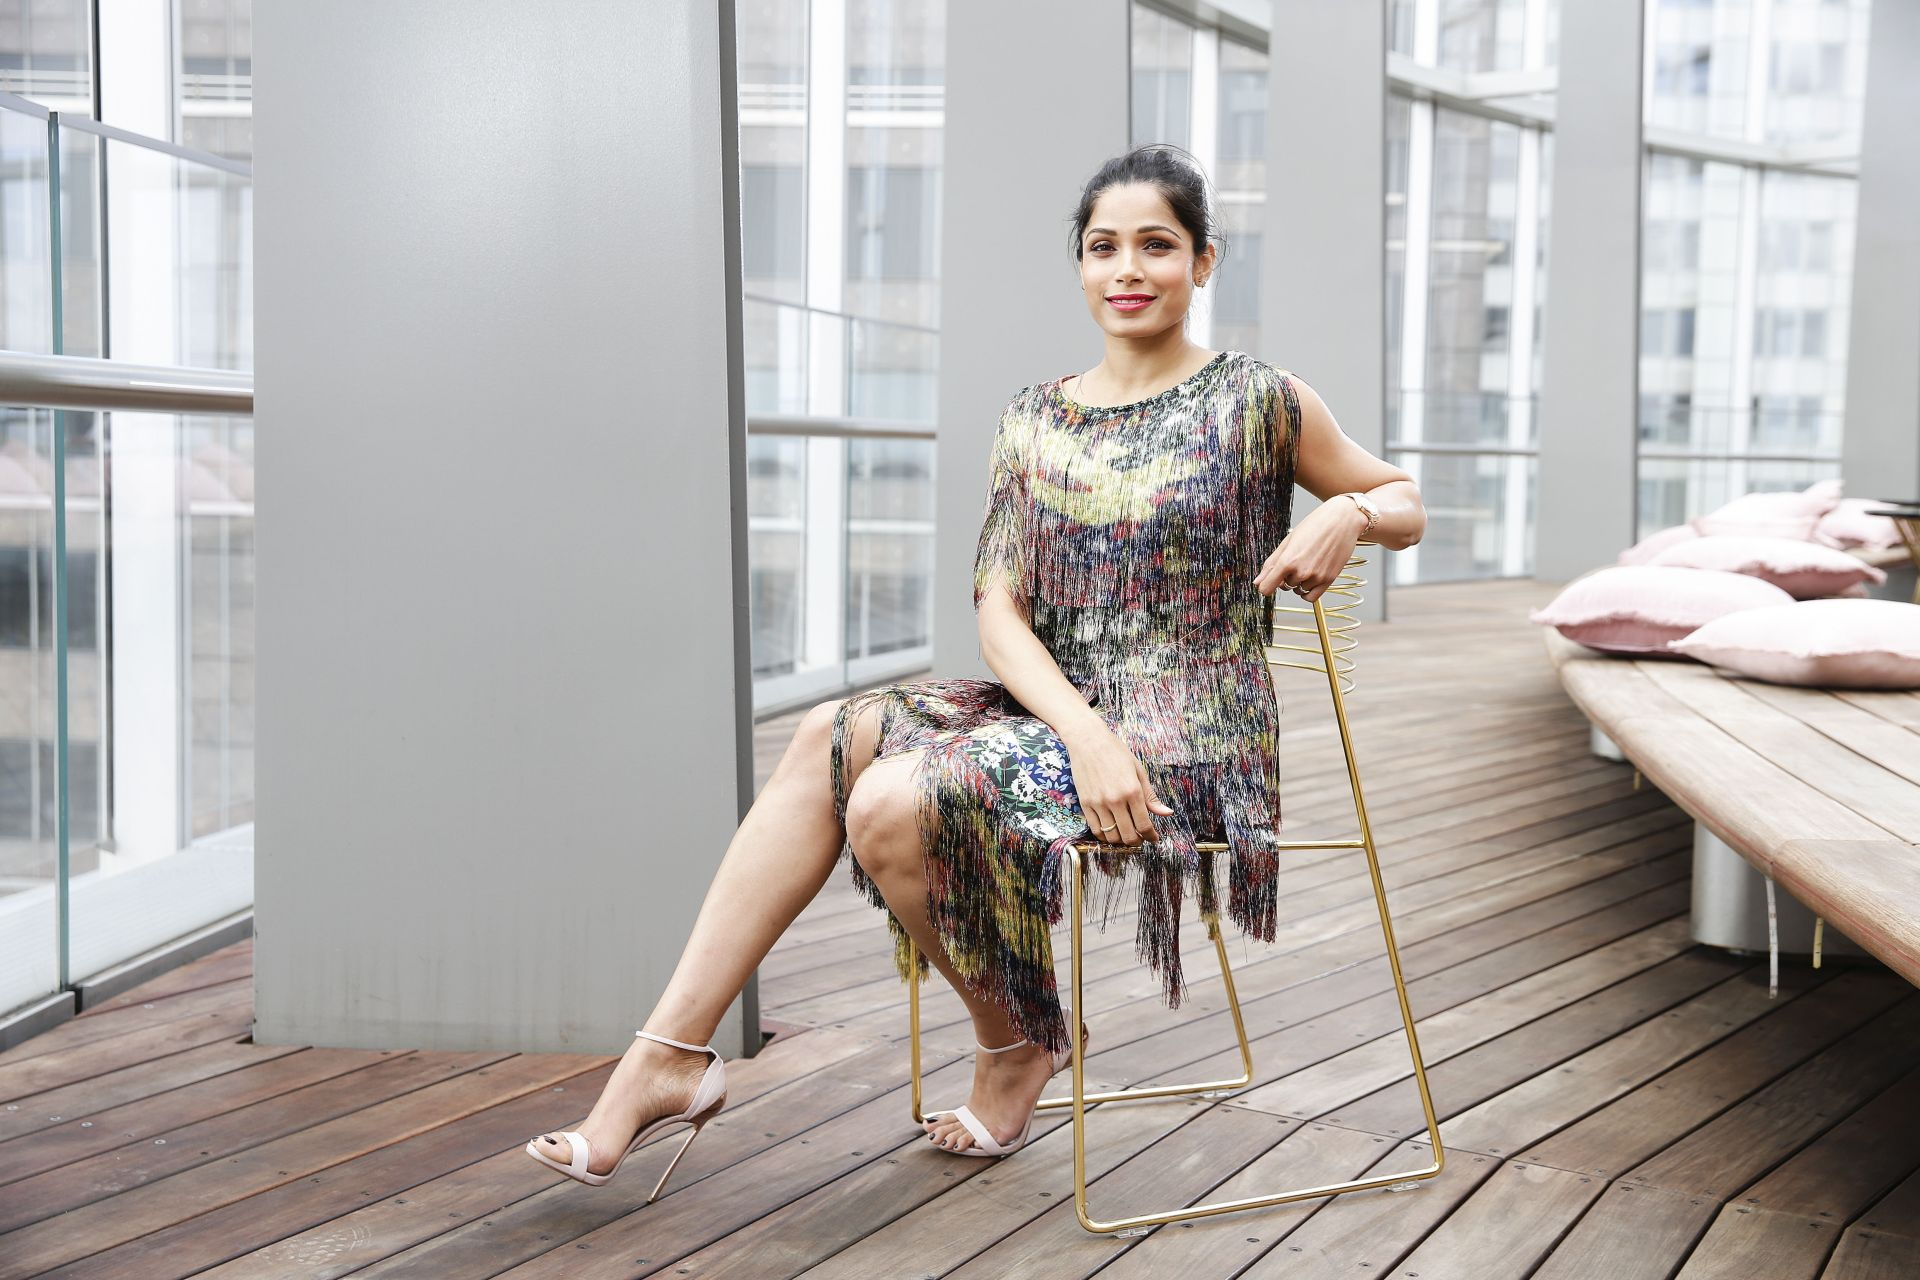 Freida Pinto on why empowering women isn't about a one size fits all approach